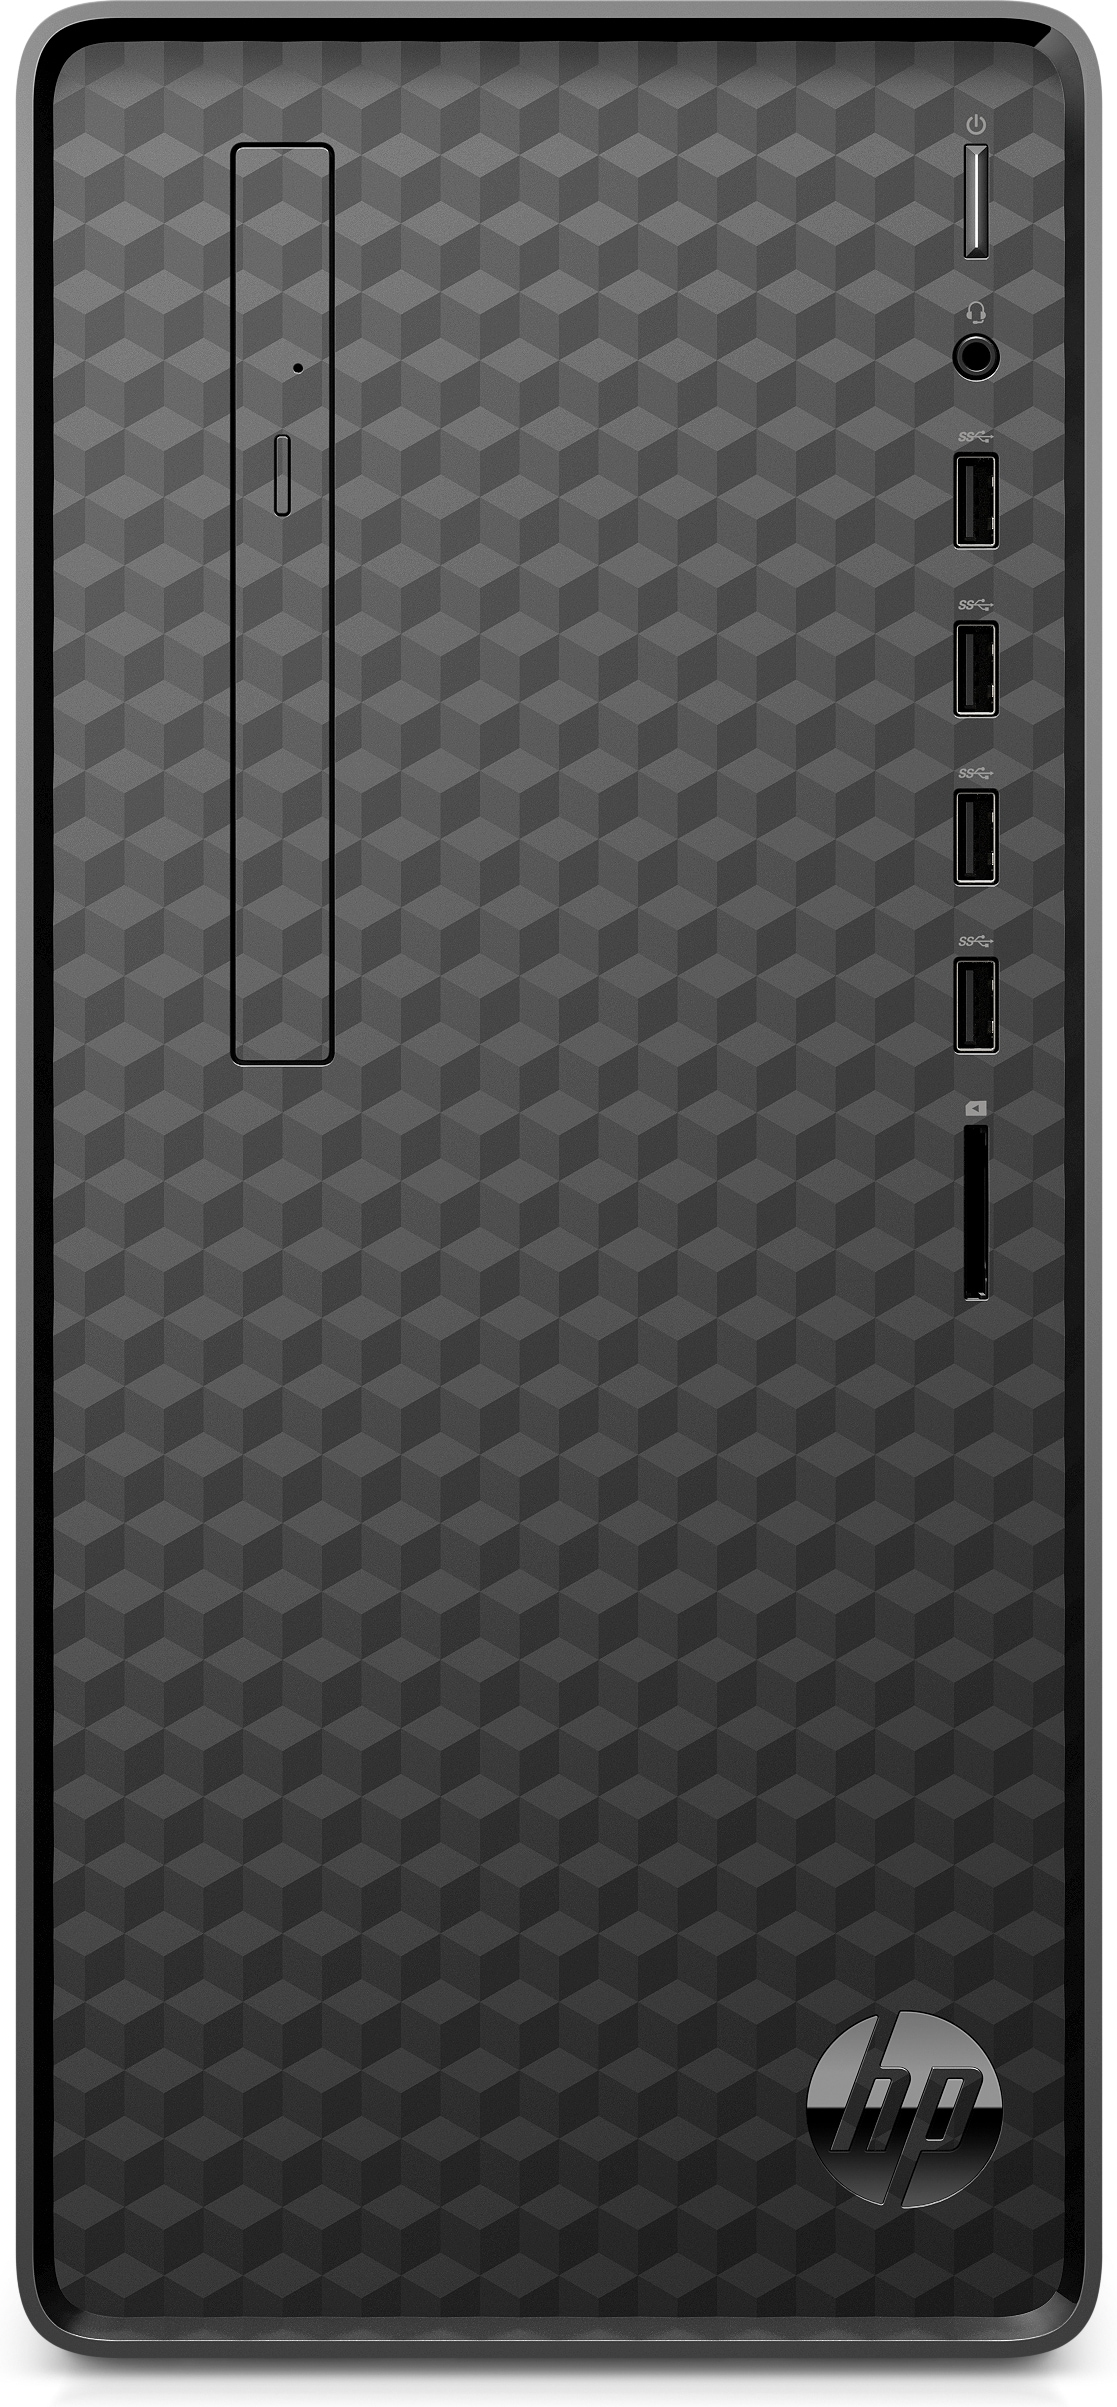 HP Desktop M01-F0006ng black